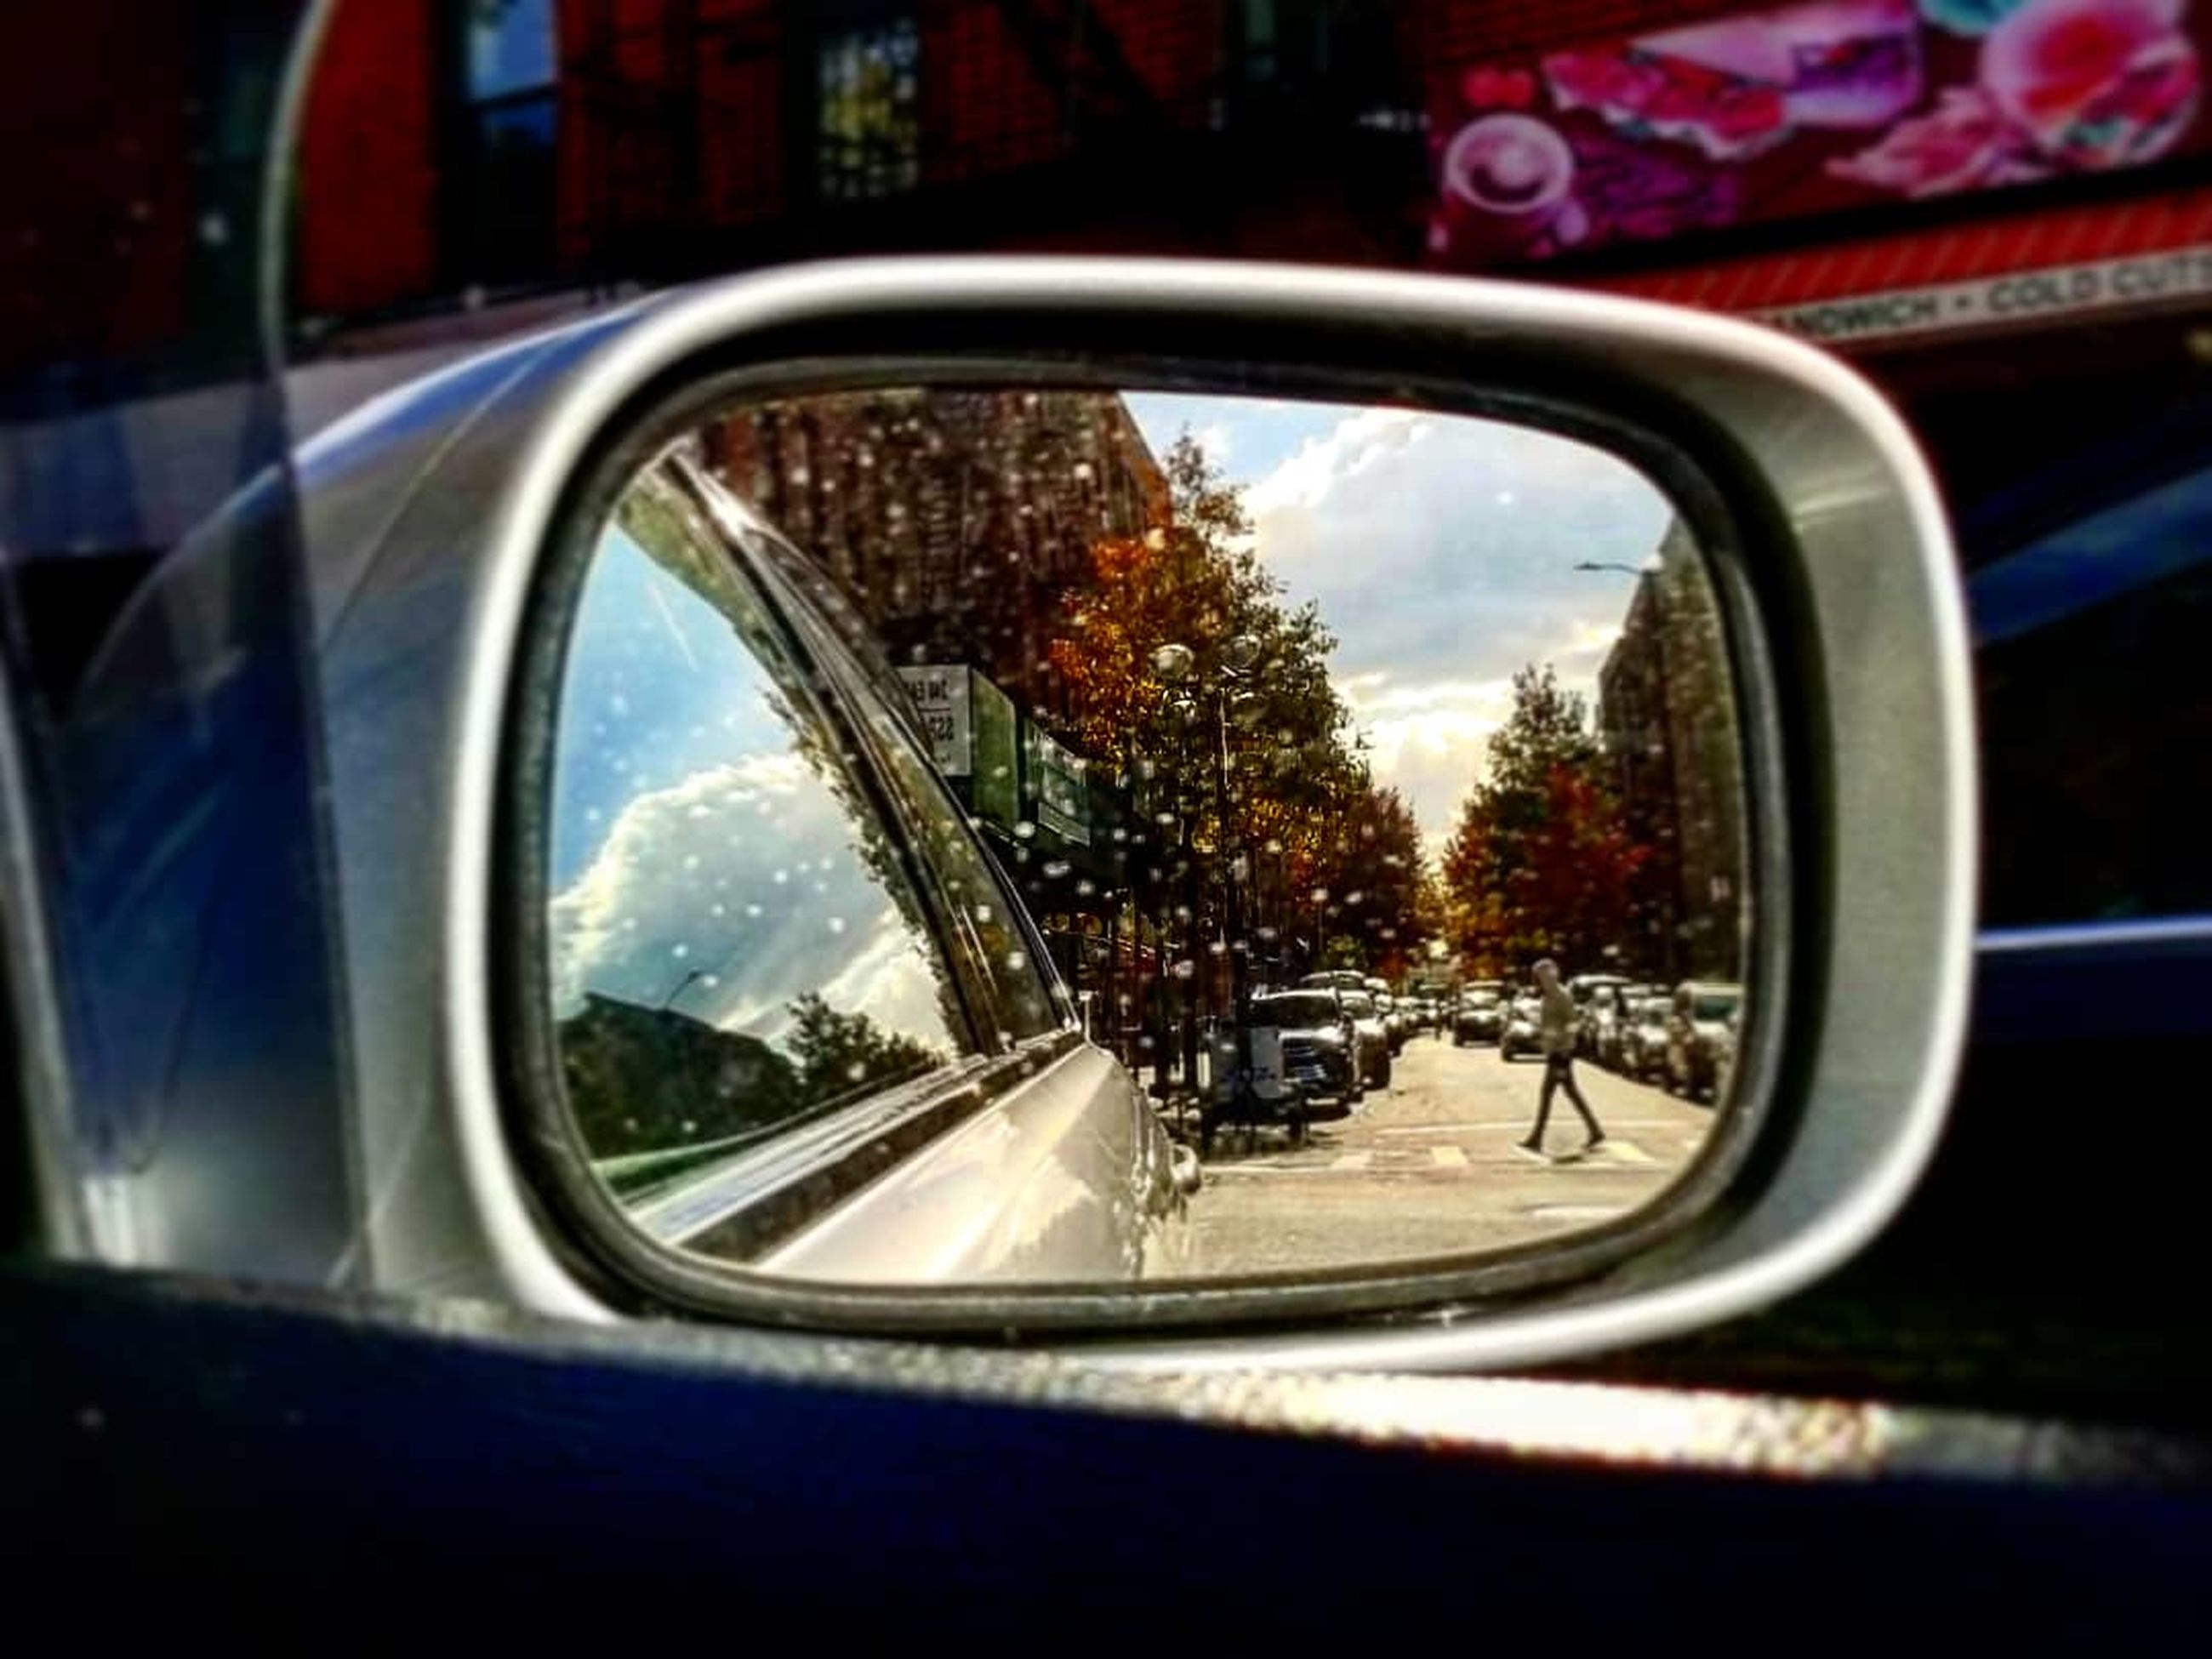 mode of transportation, car, transportation, motor vehicle, land vehicle, side-view mirror, reflection, mirror, close-up, road, city, day, no people, glass - material, window, tree, nature, rear-view mirror, outdoors, travel, vehicle mirror